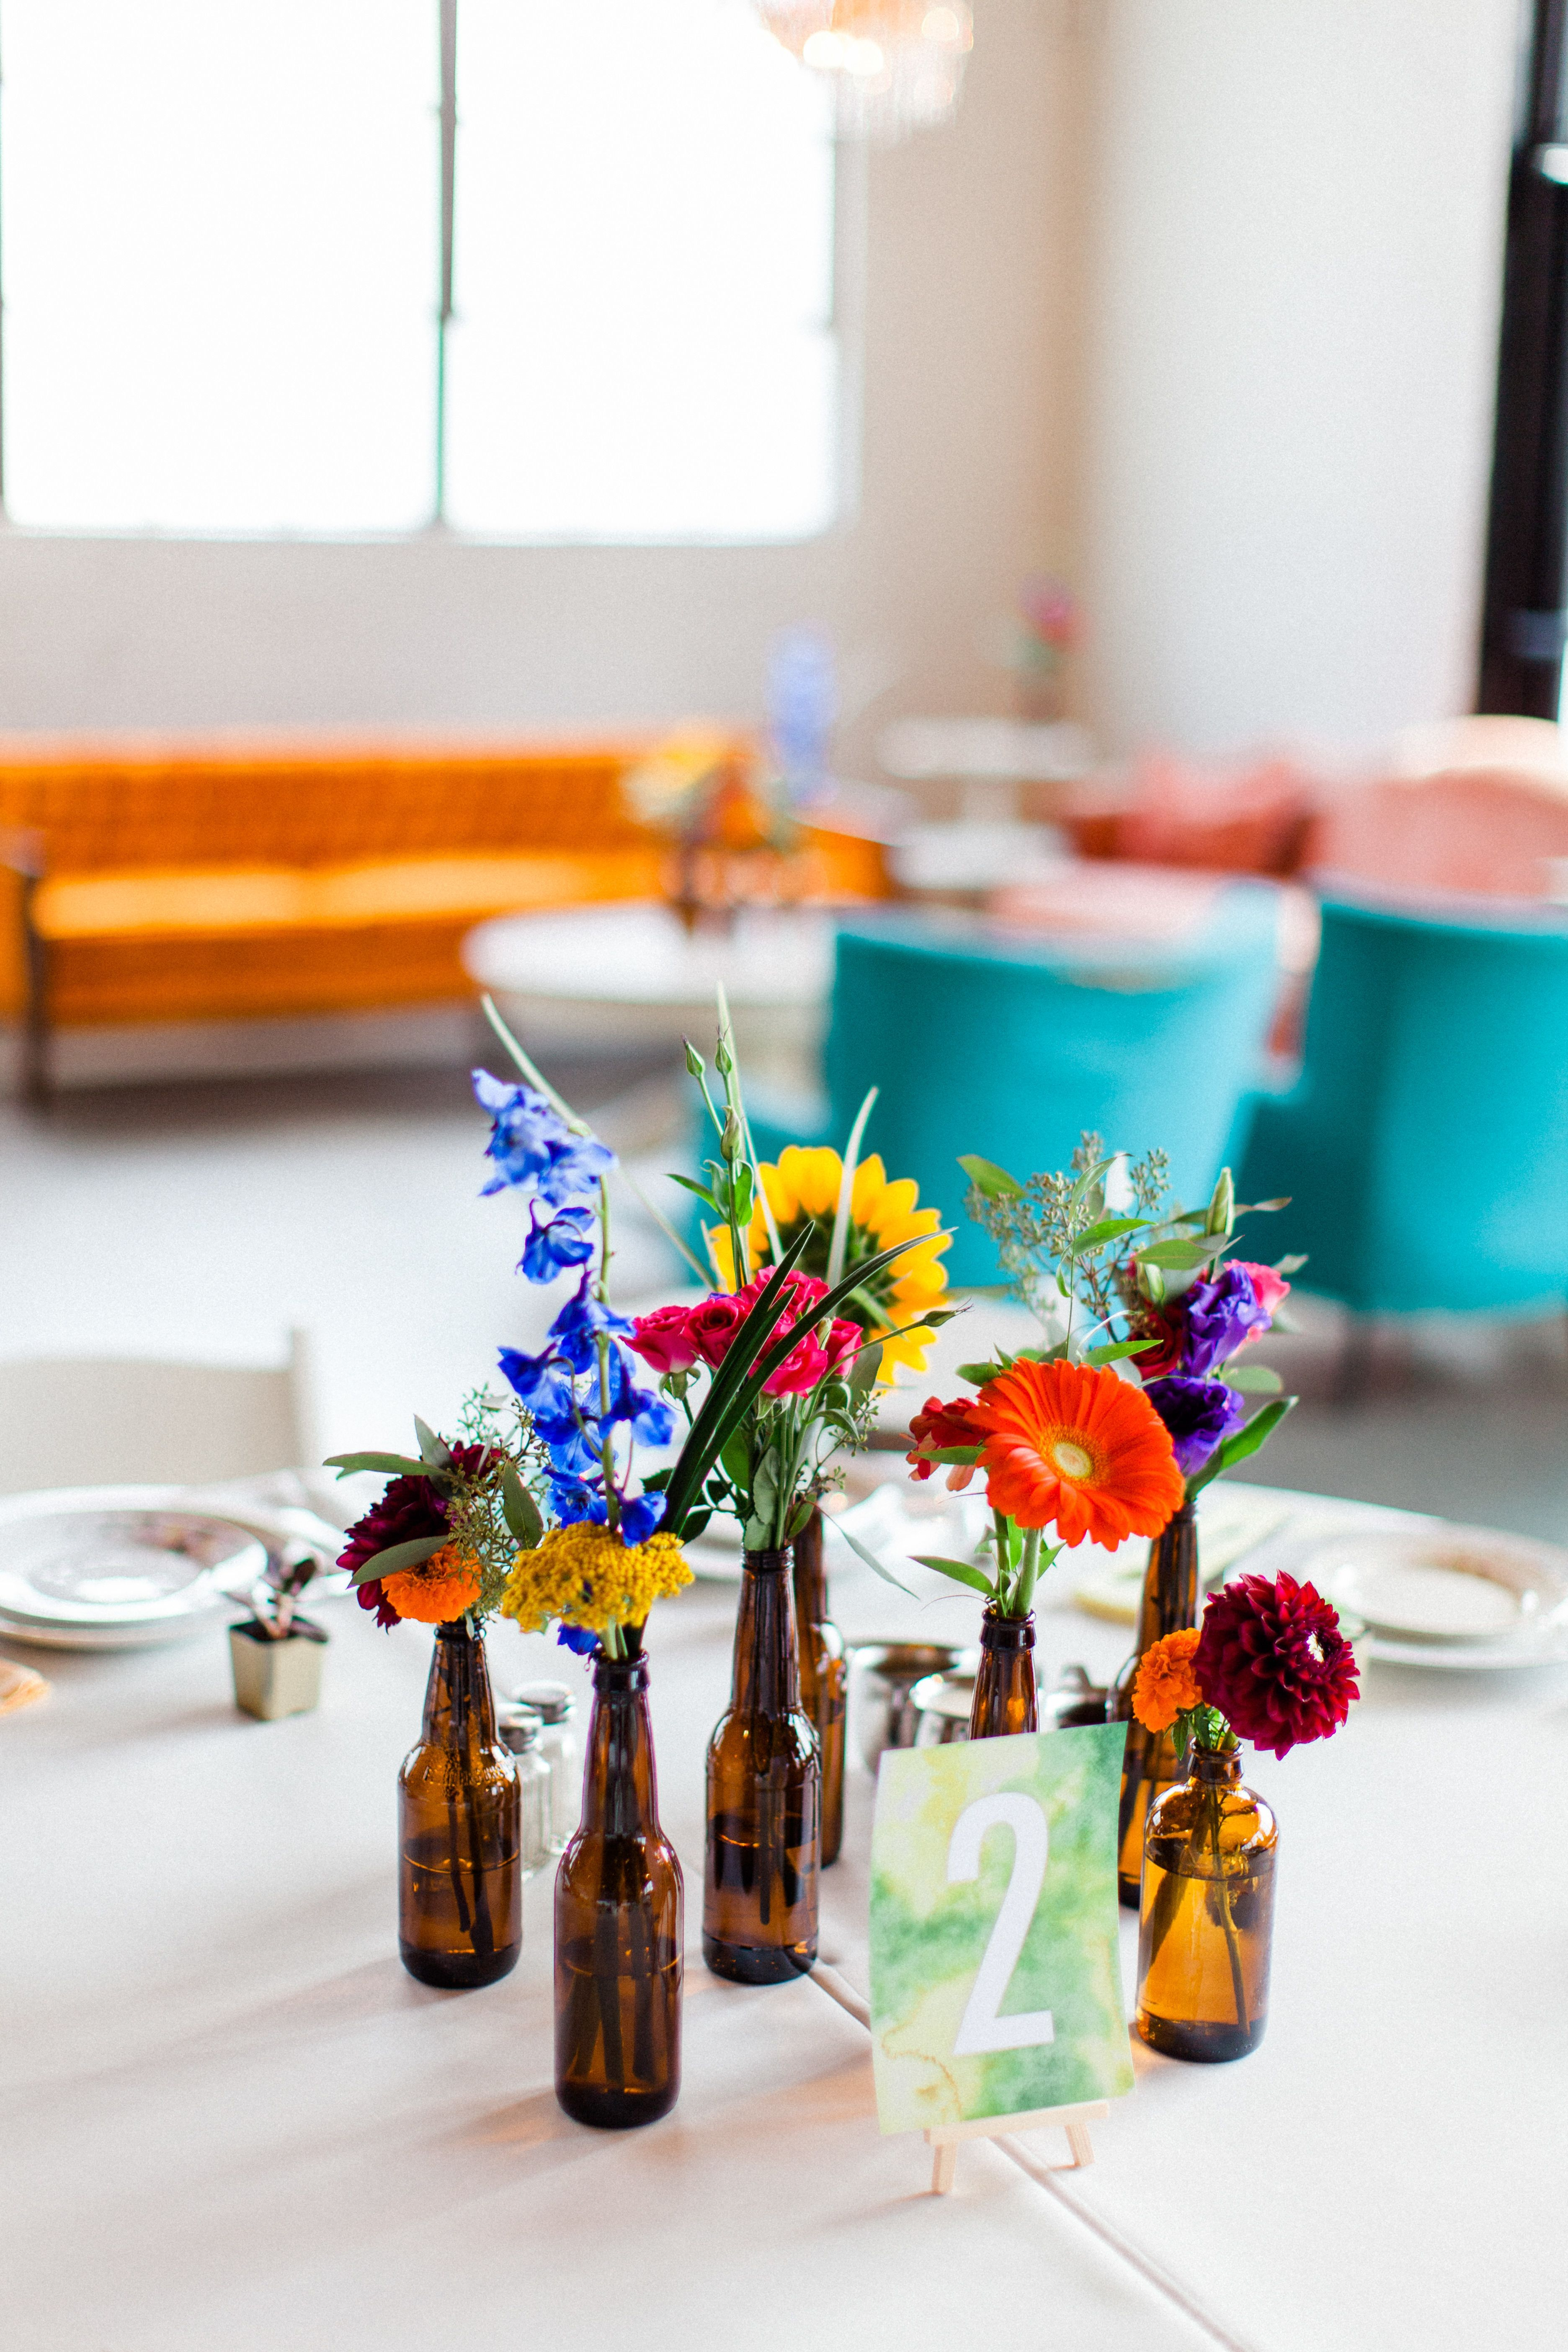 DIY Bottle Centerpieces with Sunflowers, Dahlias and